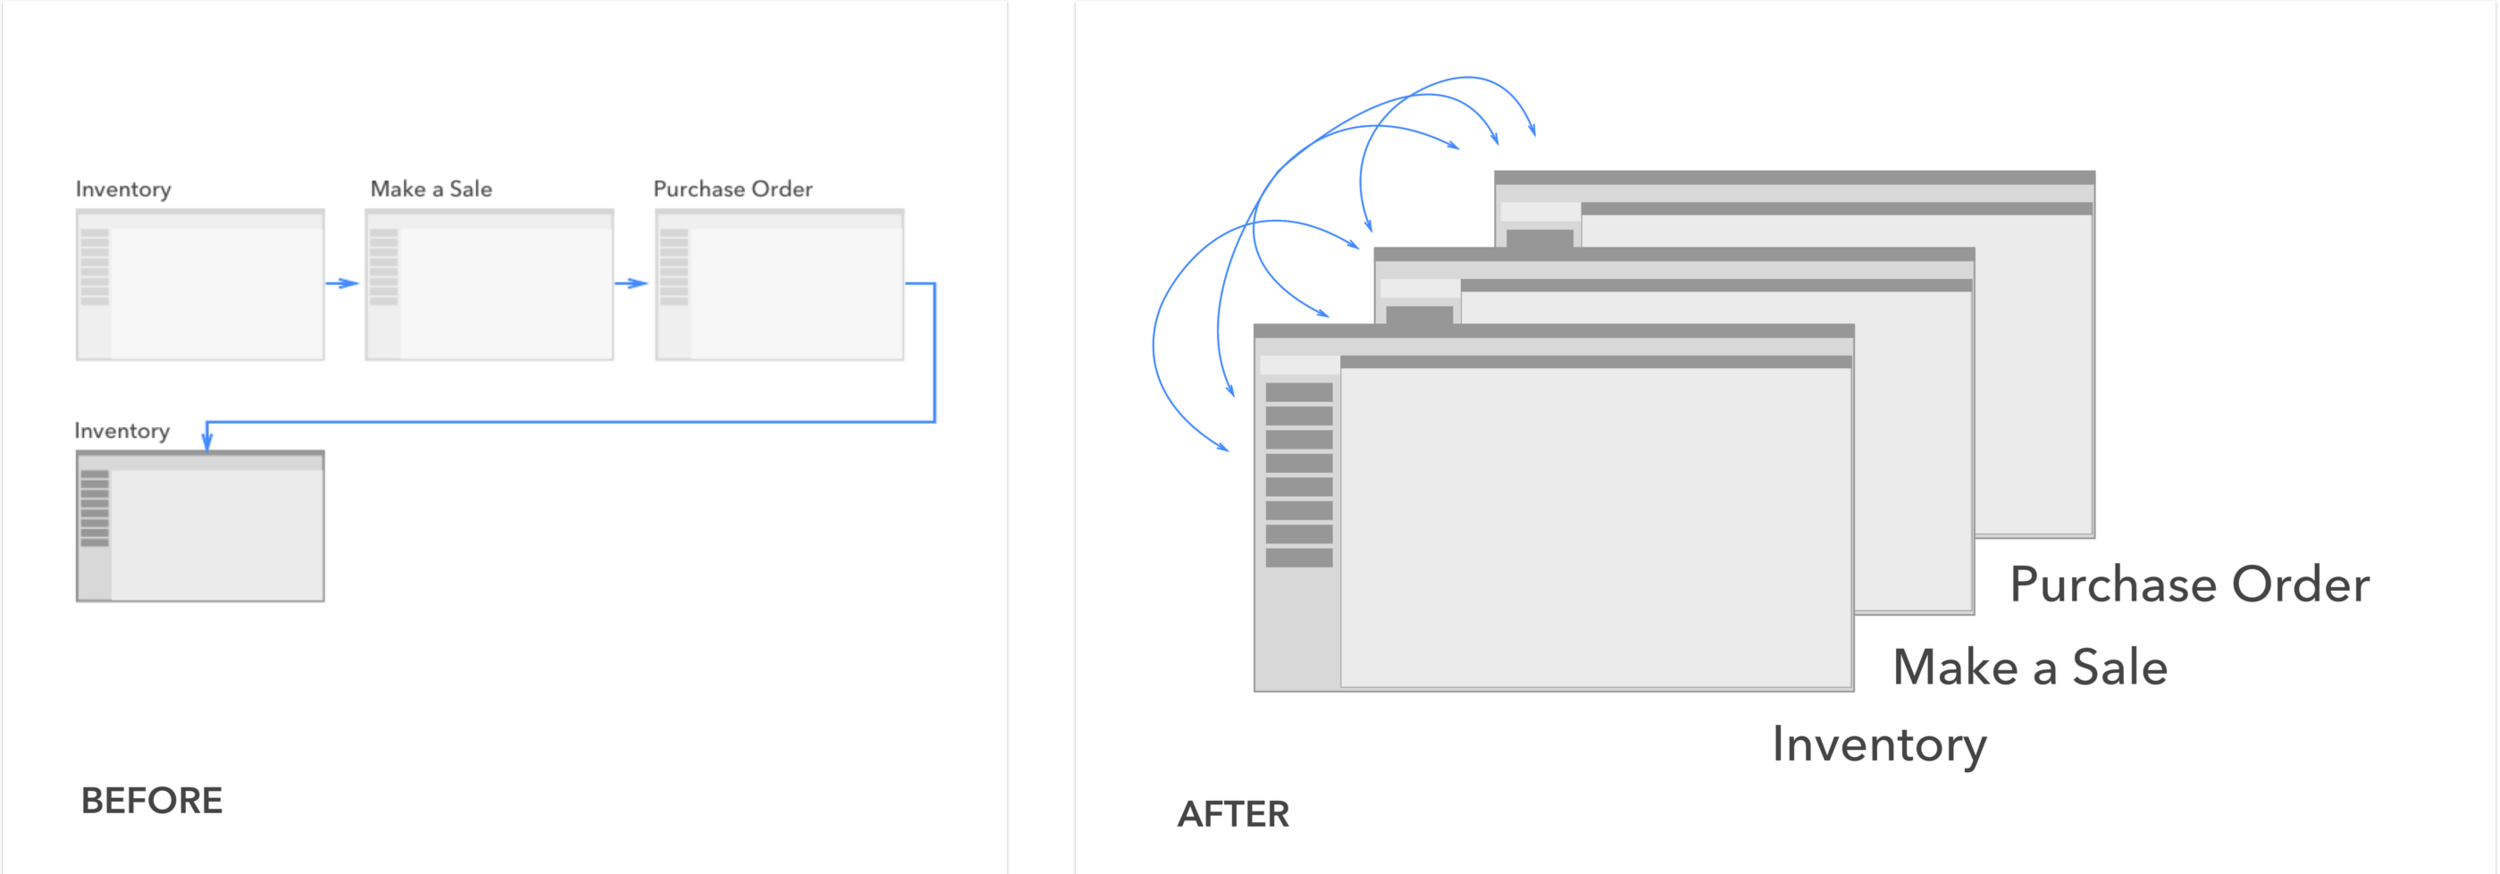 Representation of previous design (left) which only allowed one active window at a time and new design (right) in which user can easily multi-task by switching between multiple open windows.